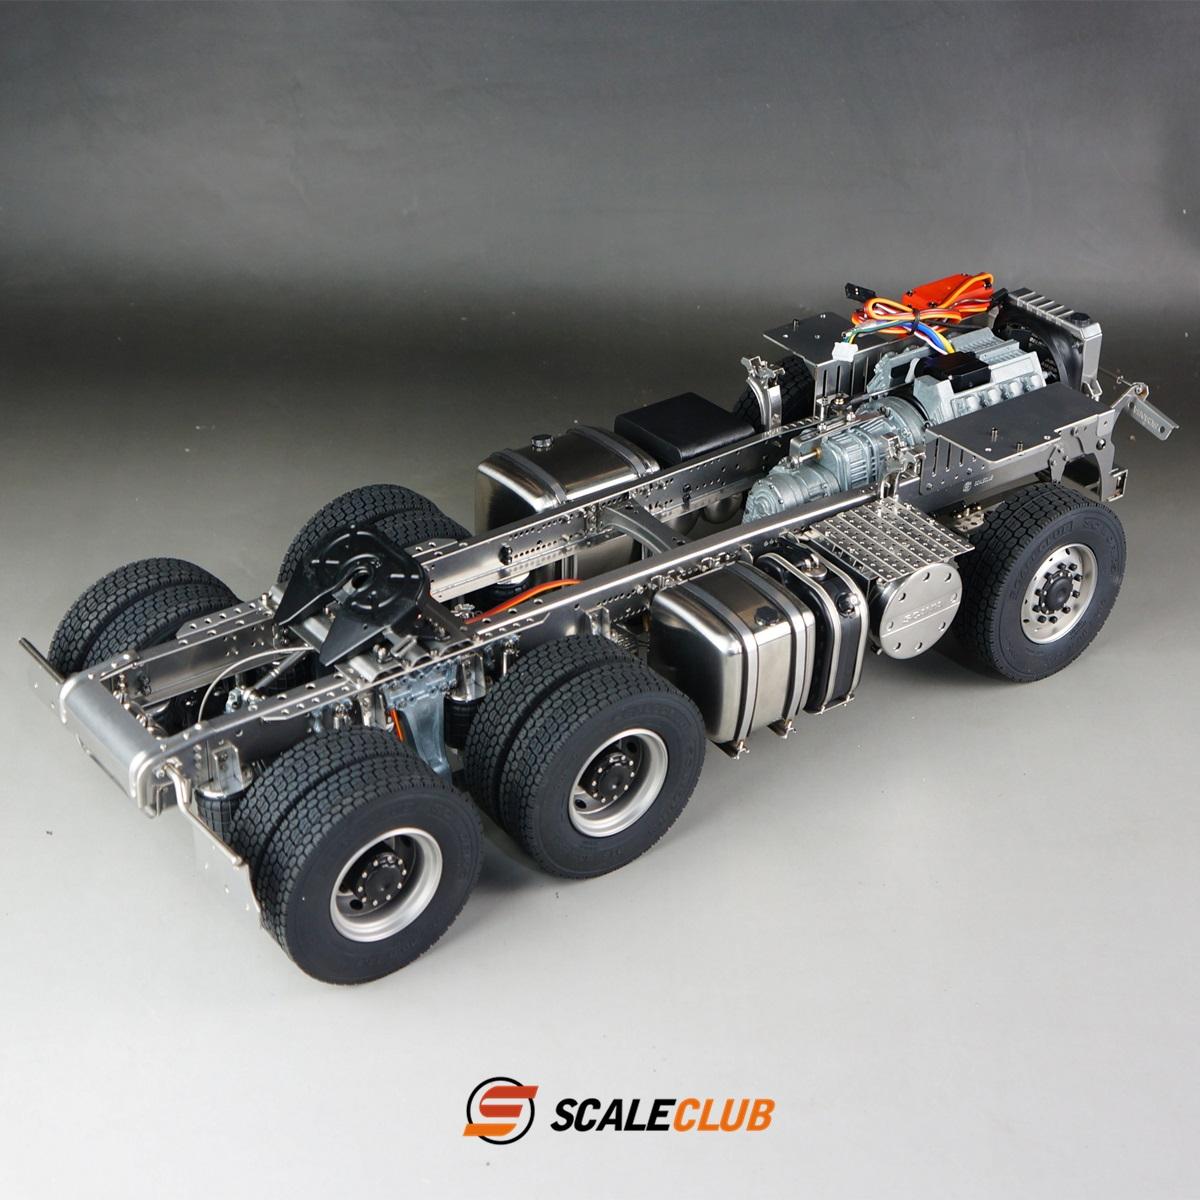 SCALECLUB  Scania  Metal 6x6 or 6x4 Chassis